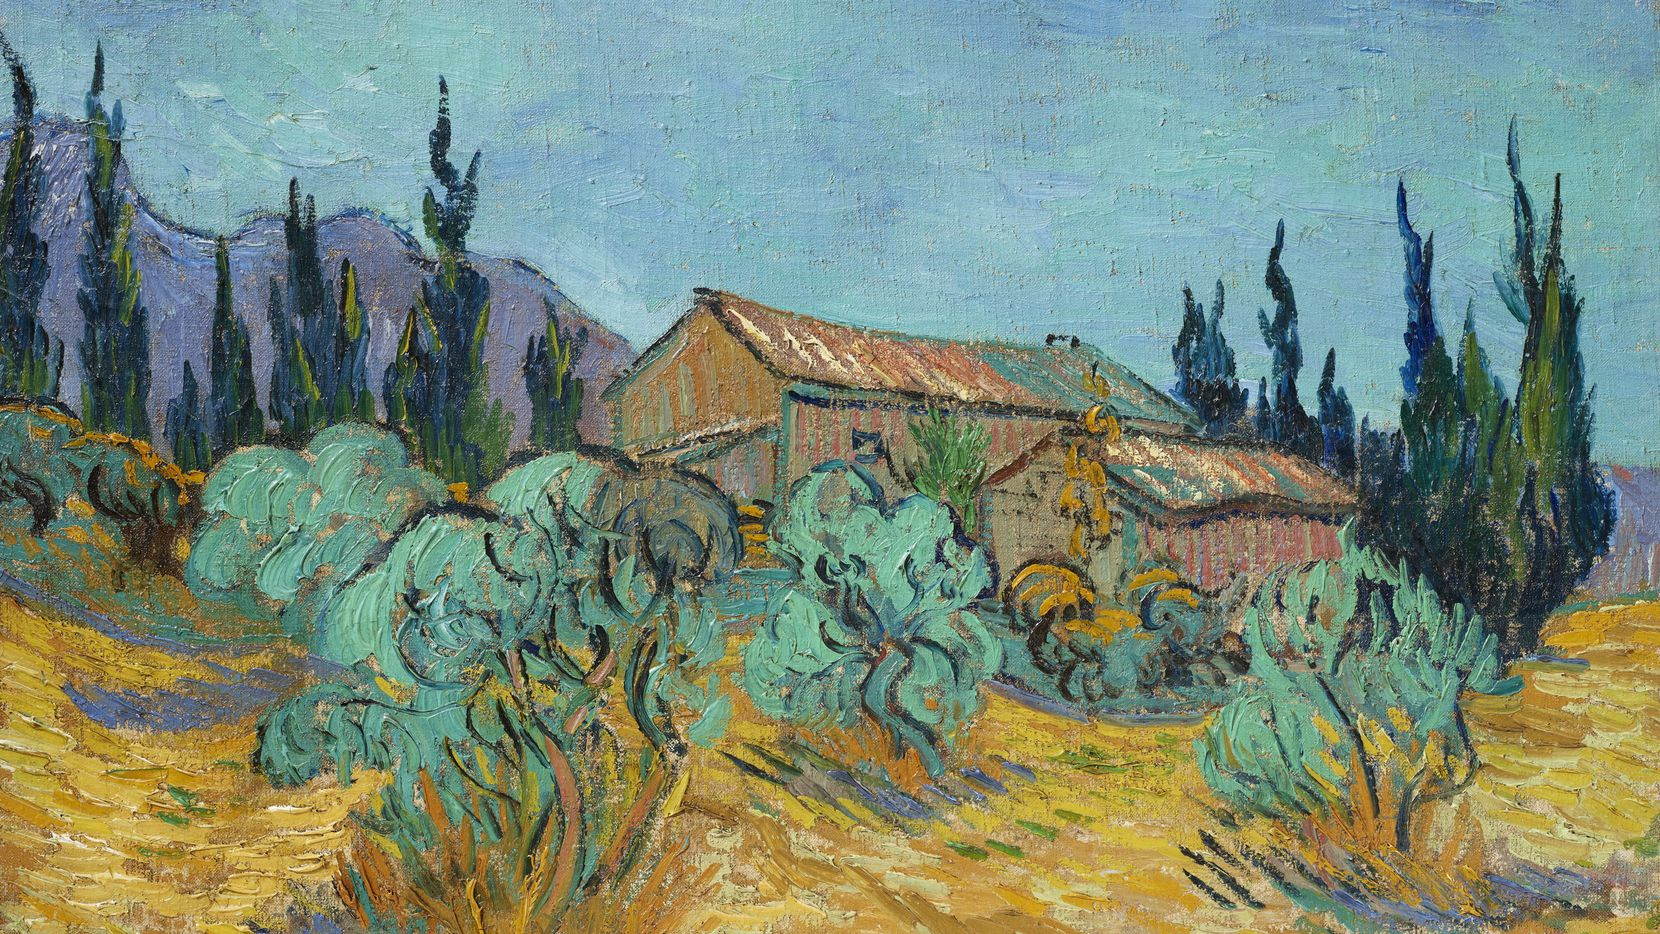 Vincent van Gogh s Cabanes de bois parmi les oliviers et cyprès is expected to bring in approximately $40 million at Christie's auction of Edwin L. Cox's Impressionist collection in November.